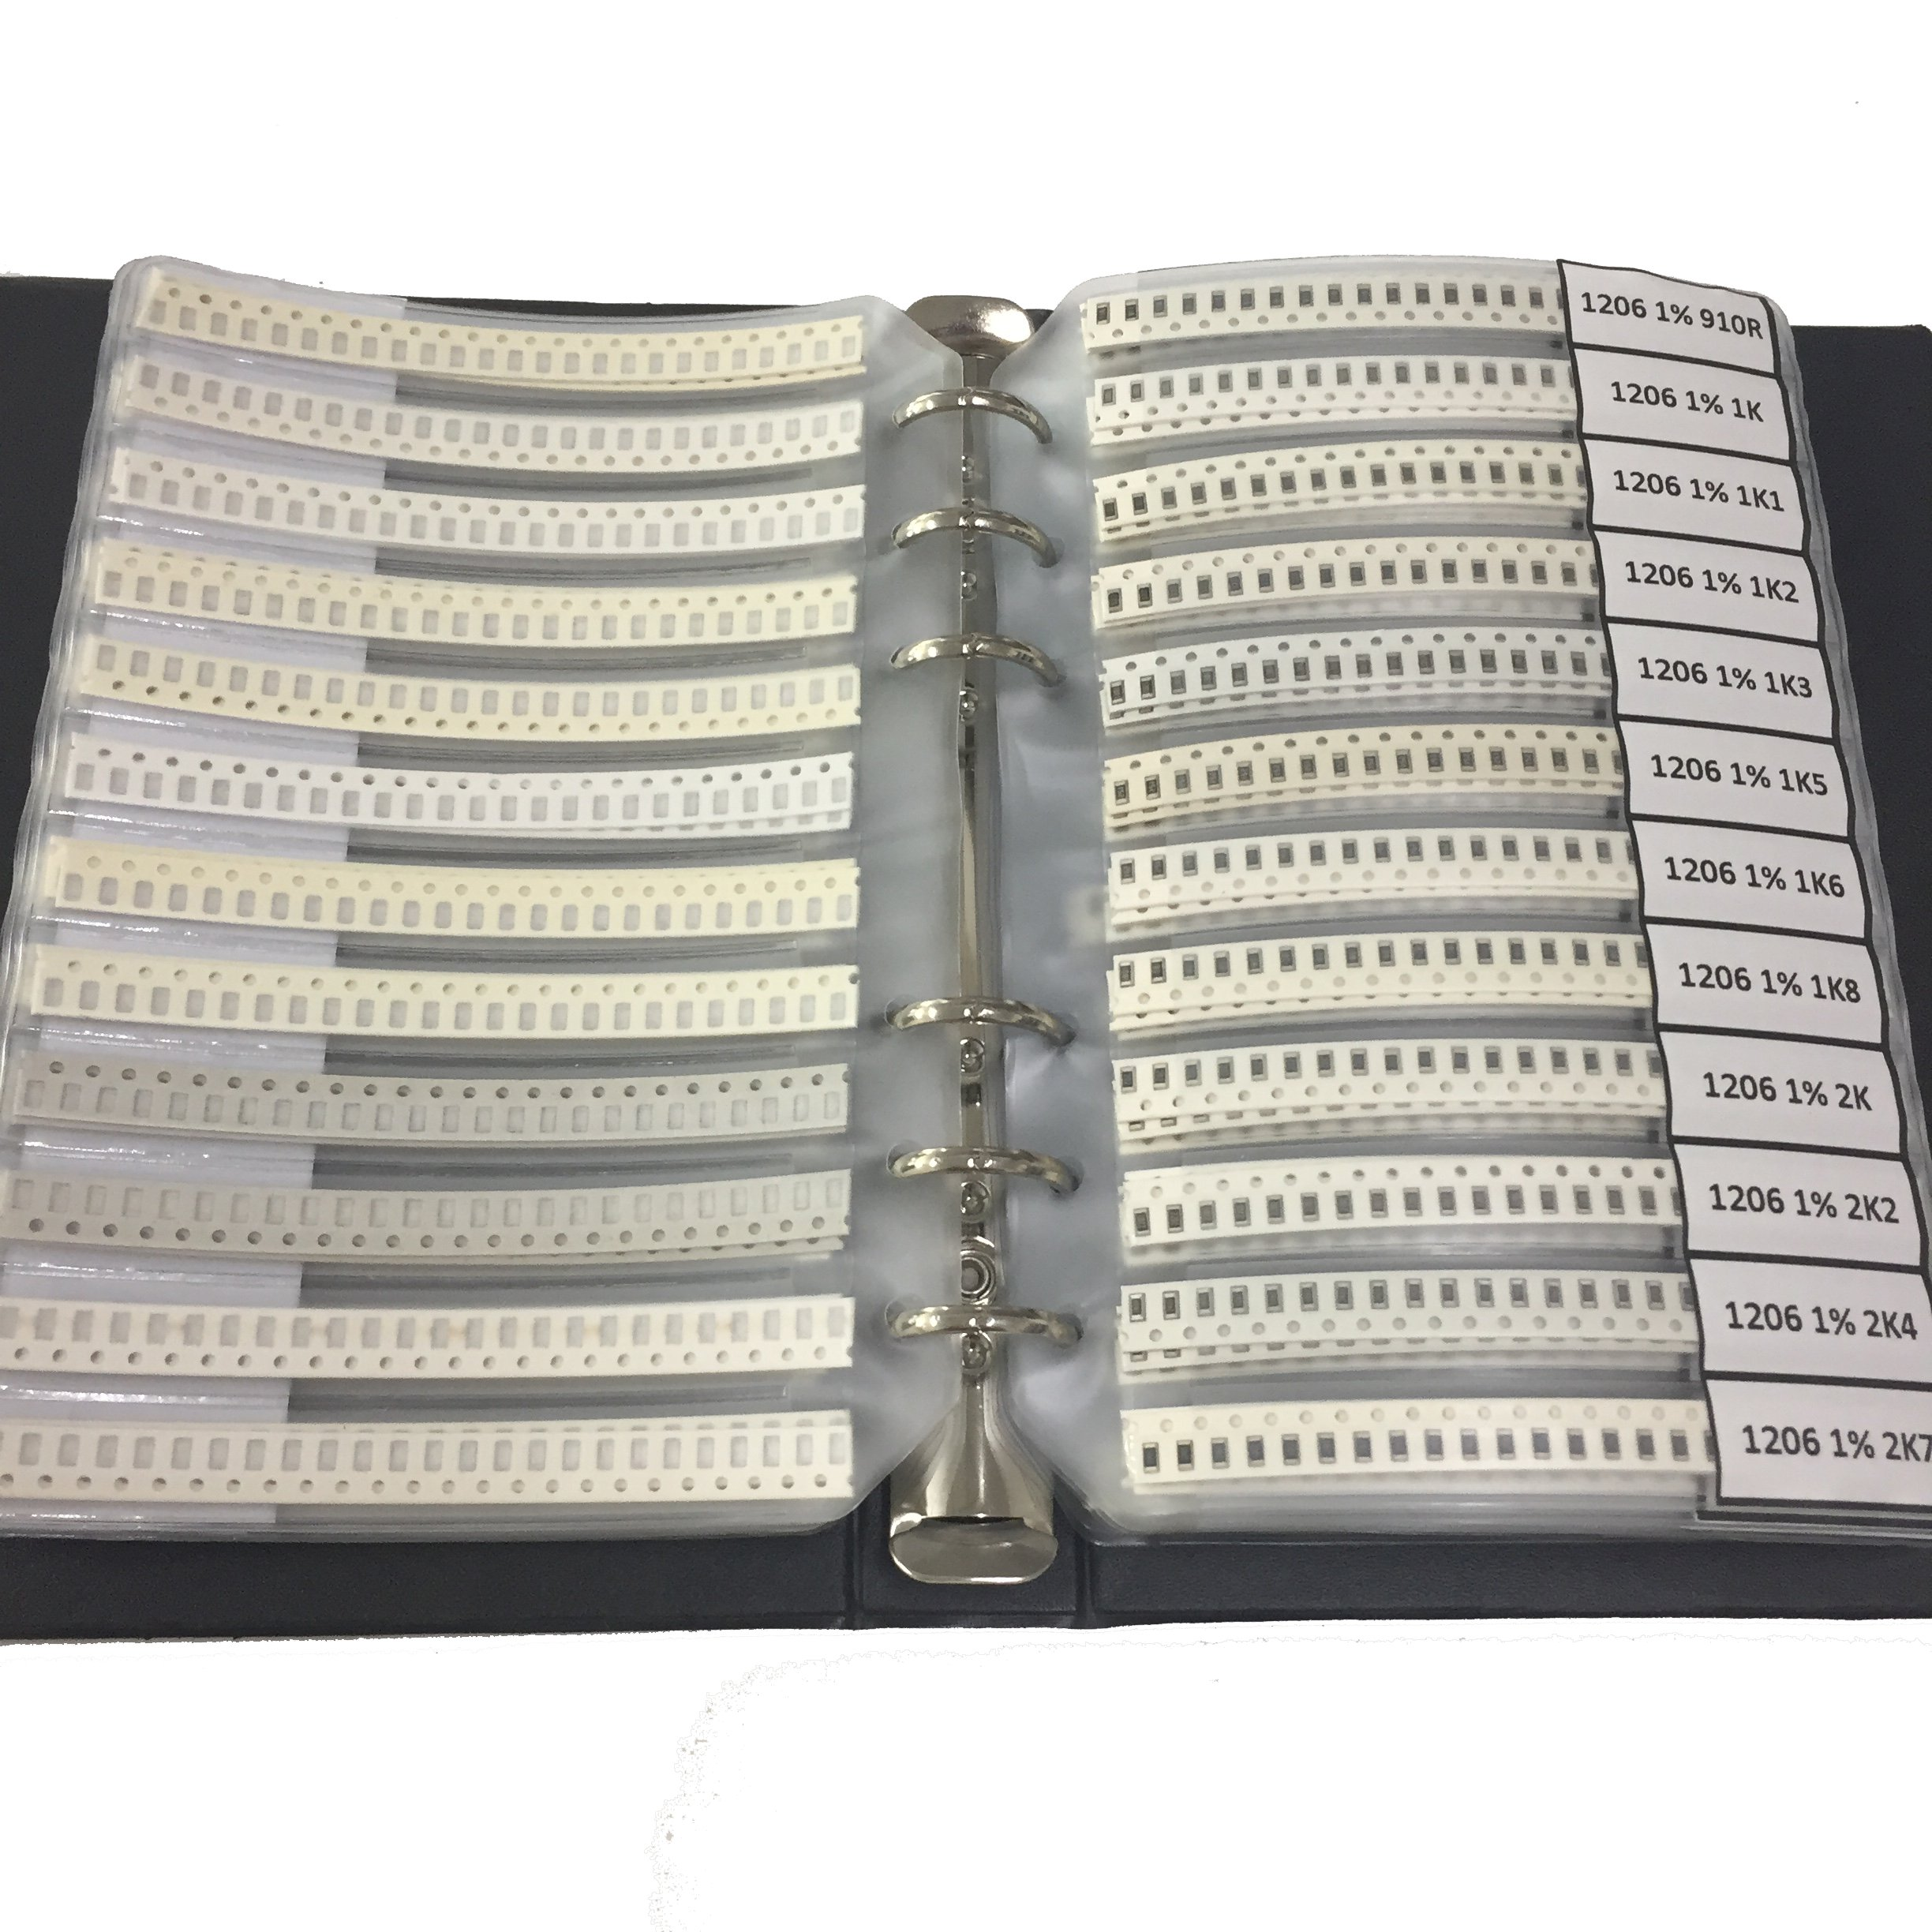 E-First 1206 1% SMD SMT Chip Resistors Sample Book Assorted Kit 170Values x50pcs Assortment